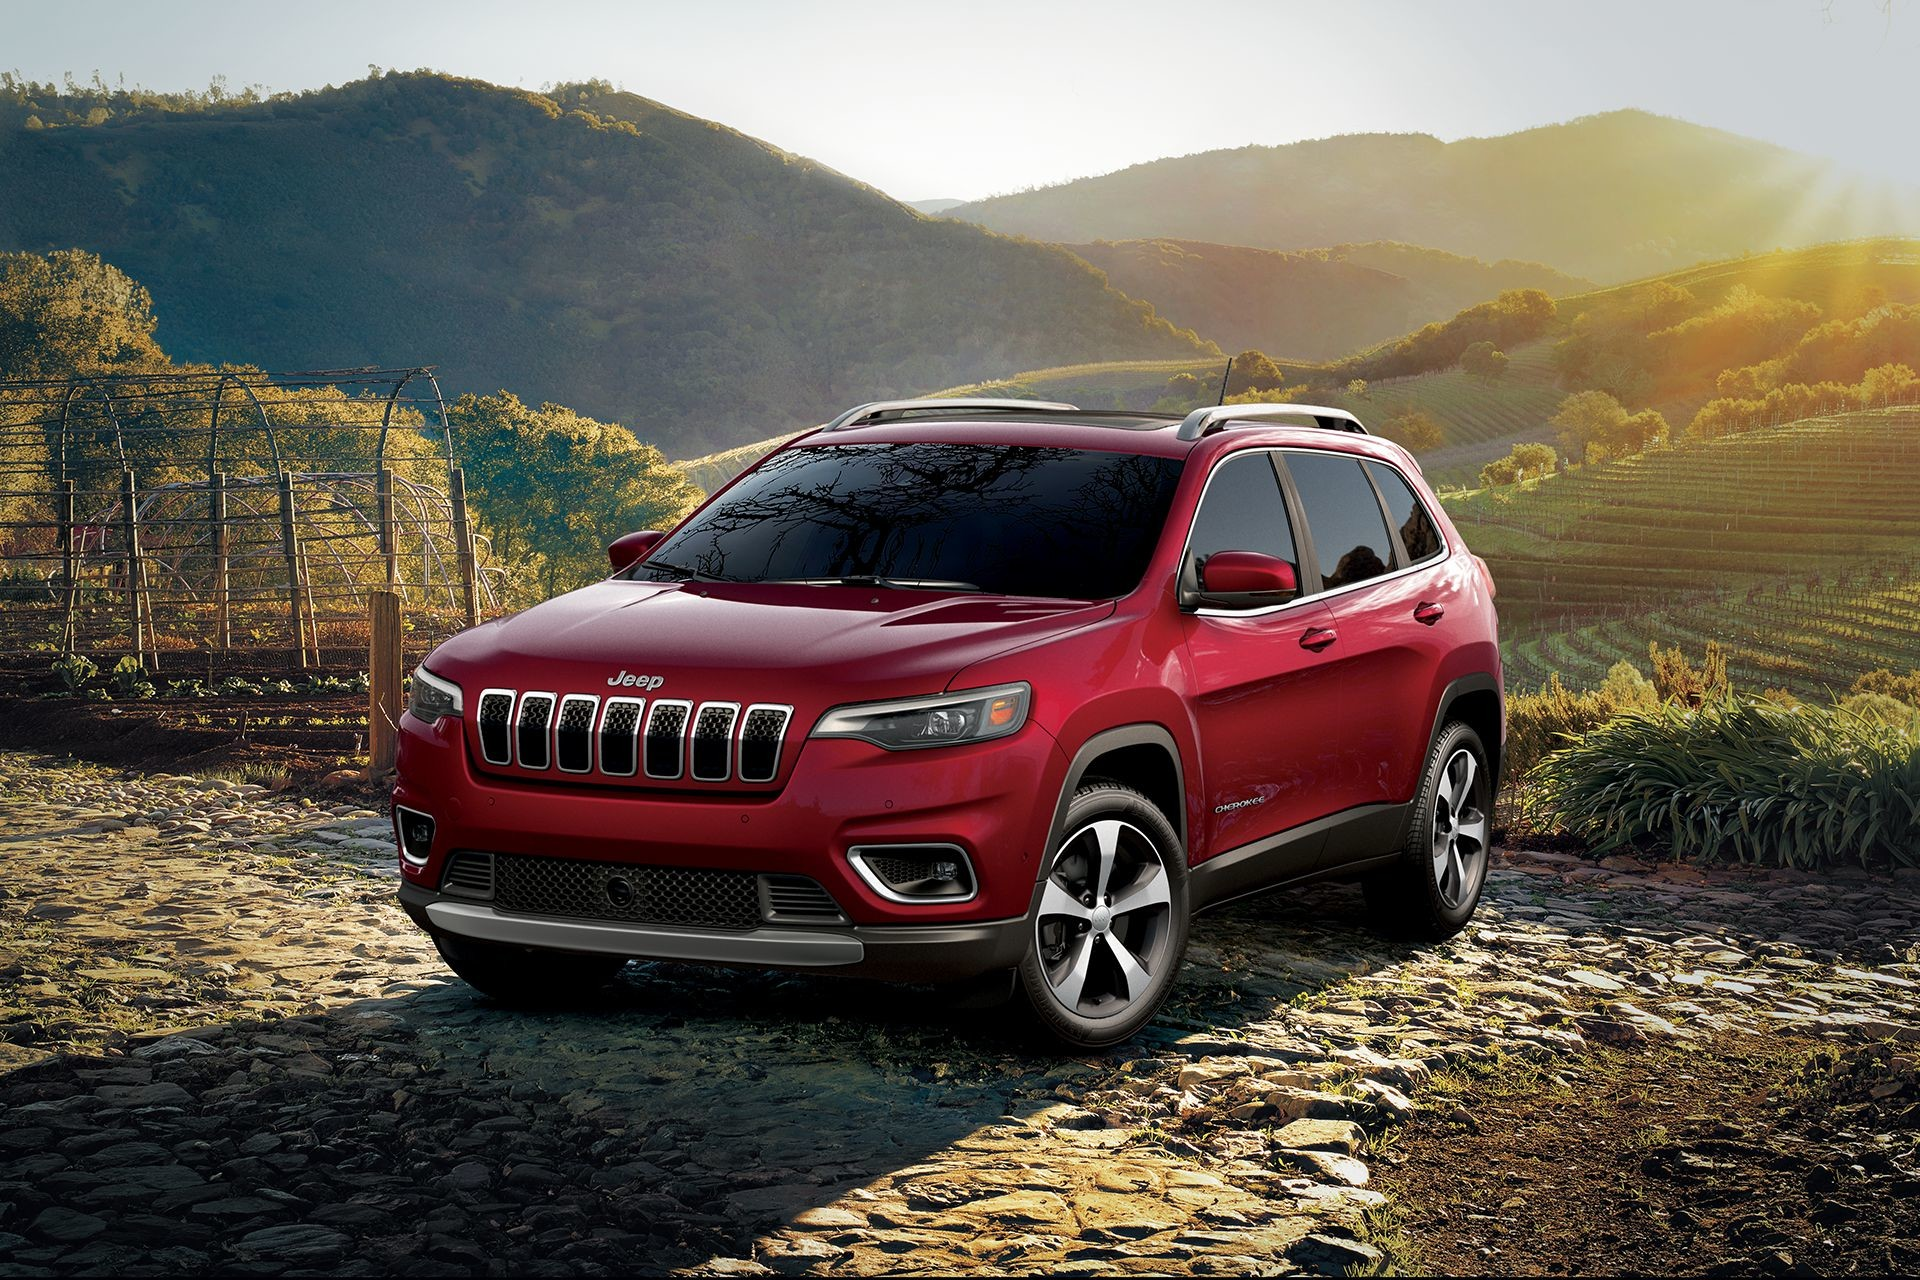 hight resolution of jeep cherokee 2019 red 4x4 outdoors